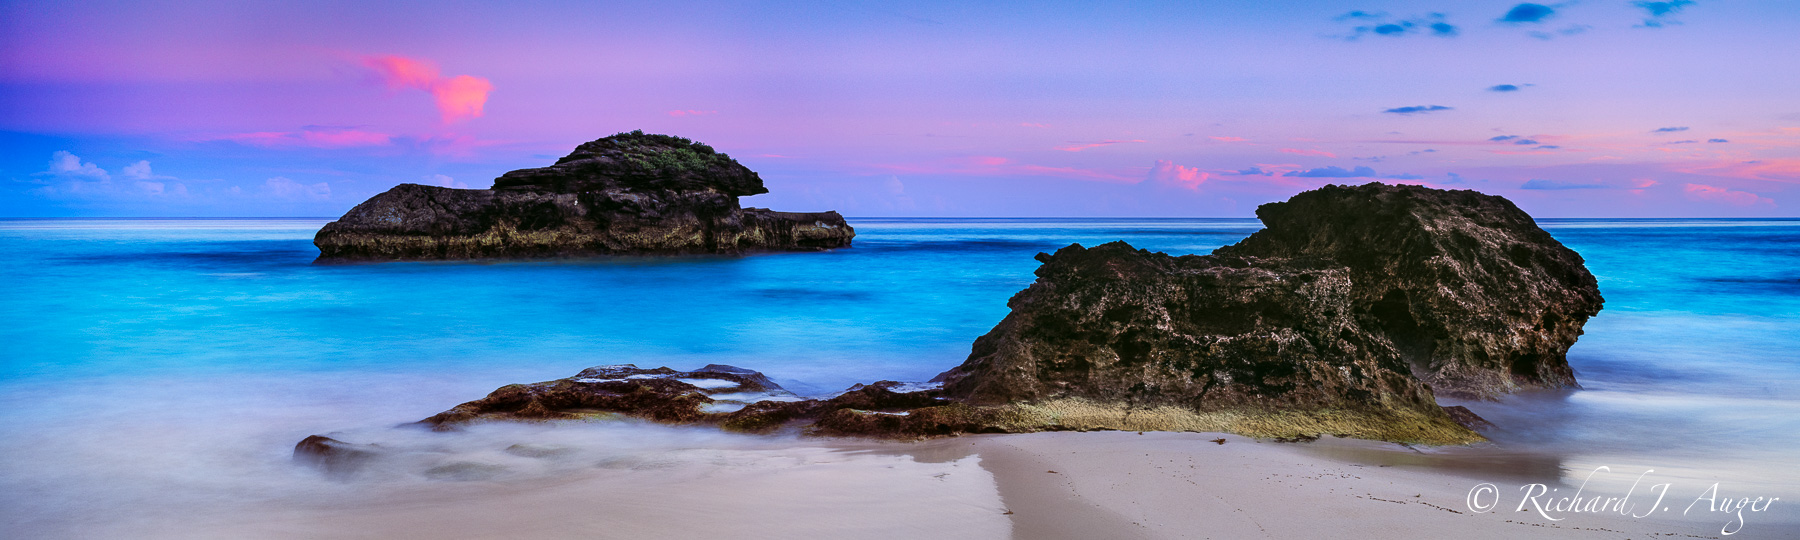 Horshoe Bay, Bermuda, Rocks, Sunset, Purples, Blues, Calm, Seascape, Ocean, Panorama